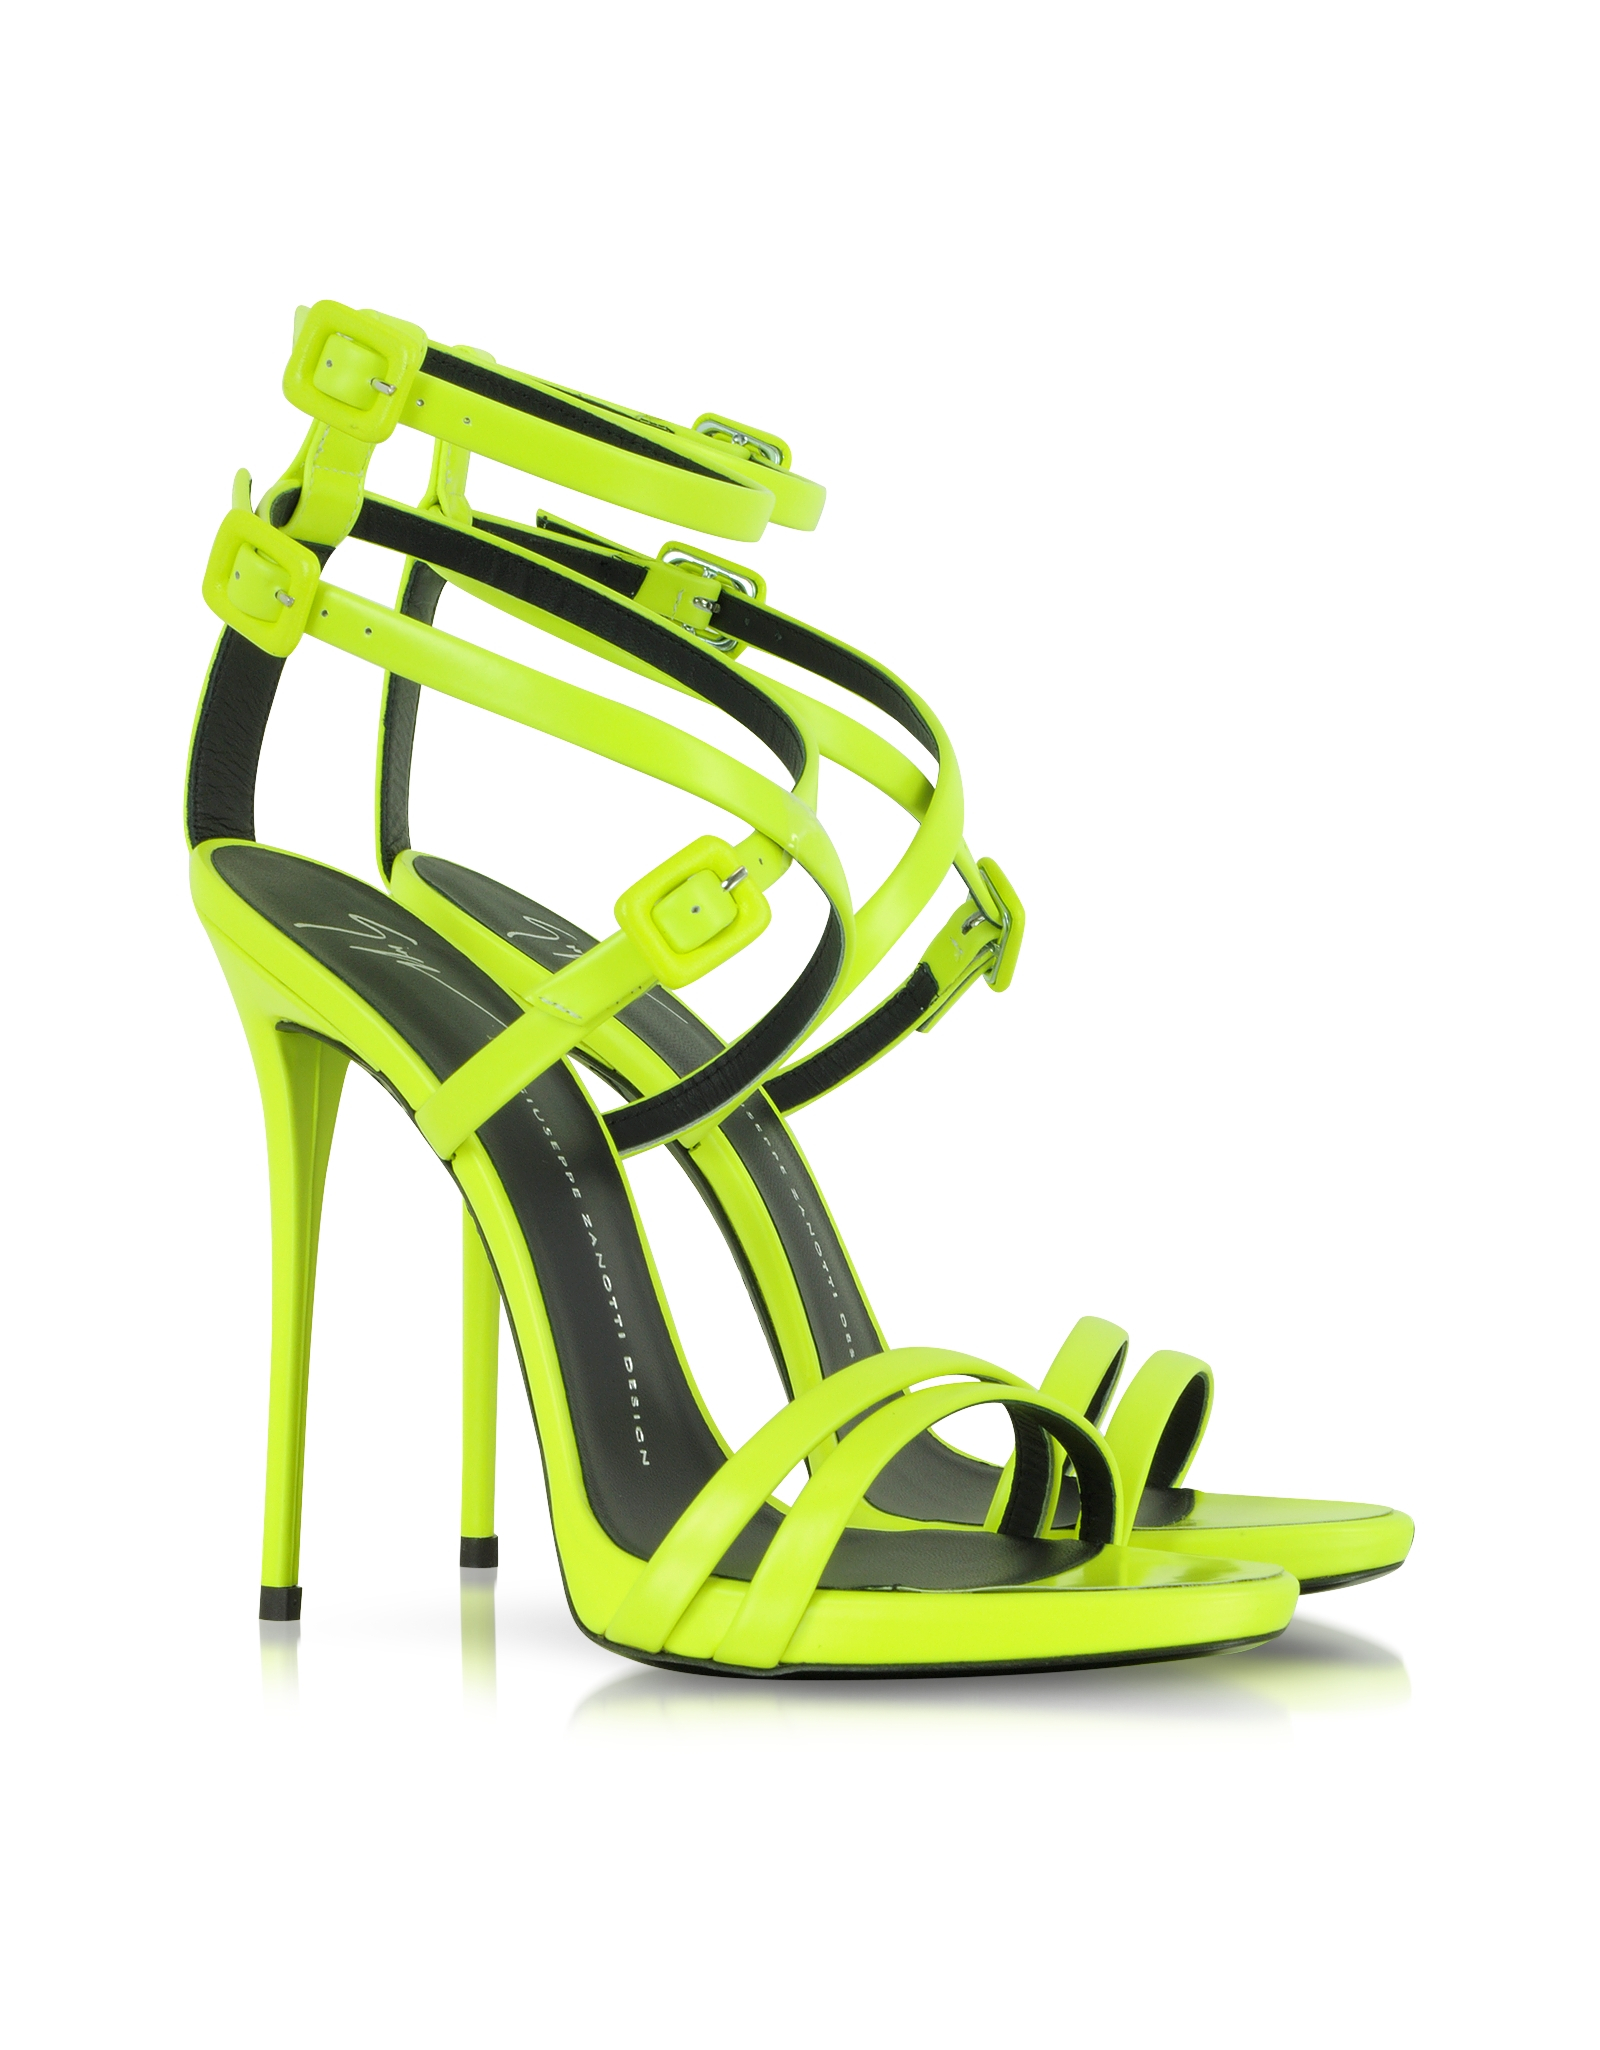 Lyst - Giuseppe Zanotti Neon Yellow Leather Ankle Strap ...